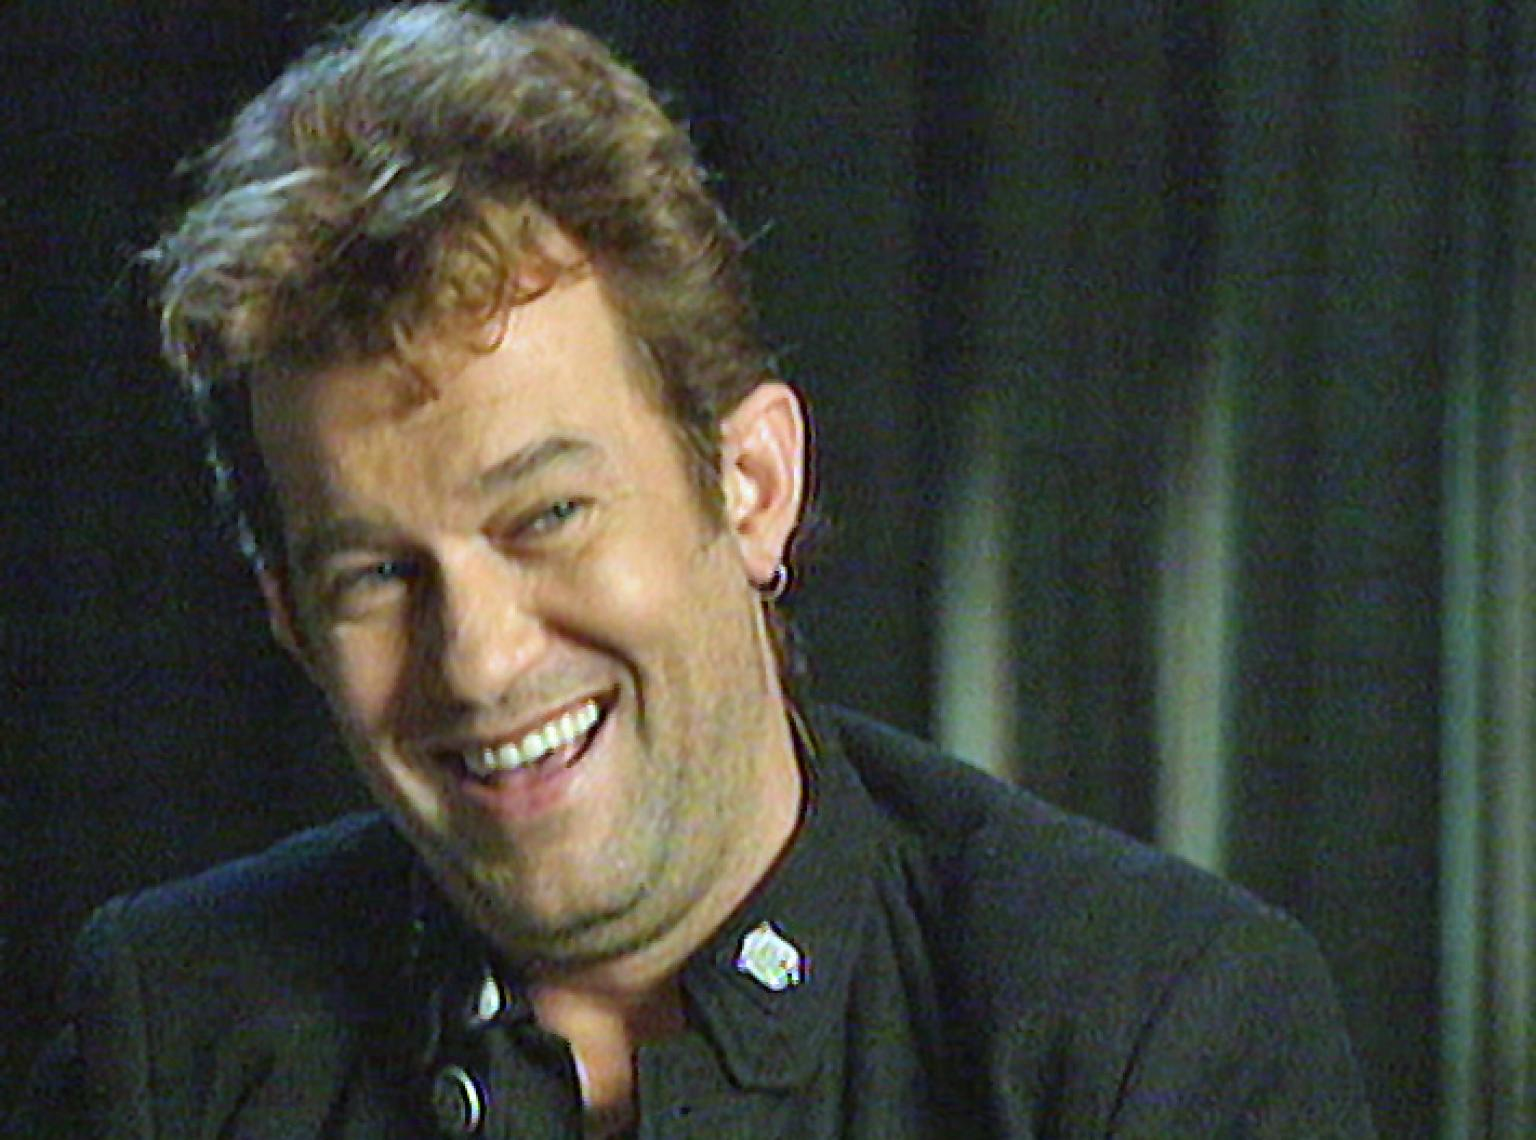 Close up head and shoulders shot of Jimmy Barnes wearing a black shirt and smiling at the camera with his head tilted slightly. There's a black curtain in the background.